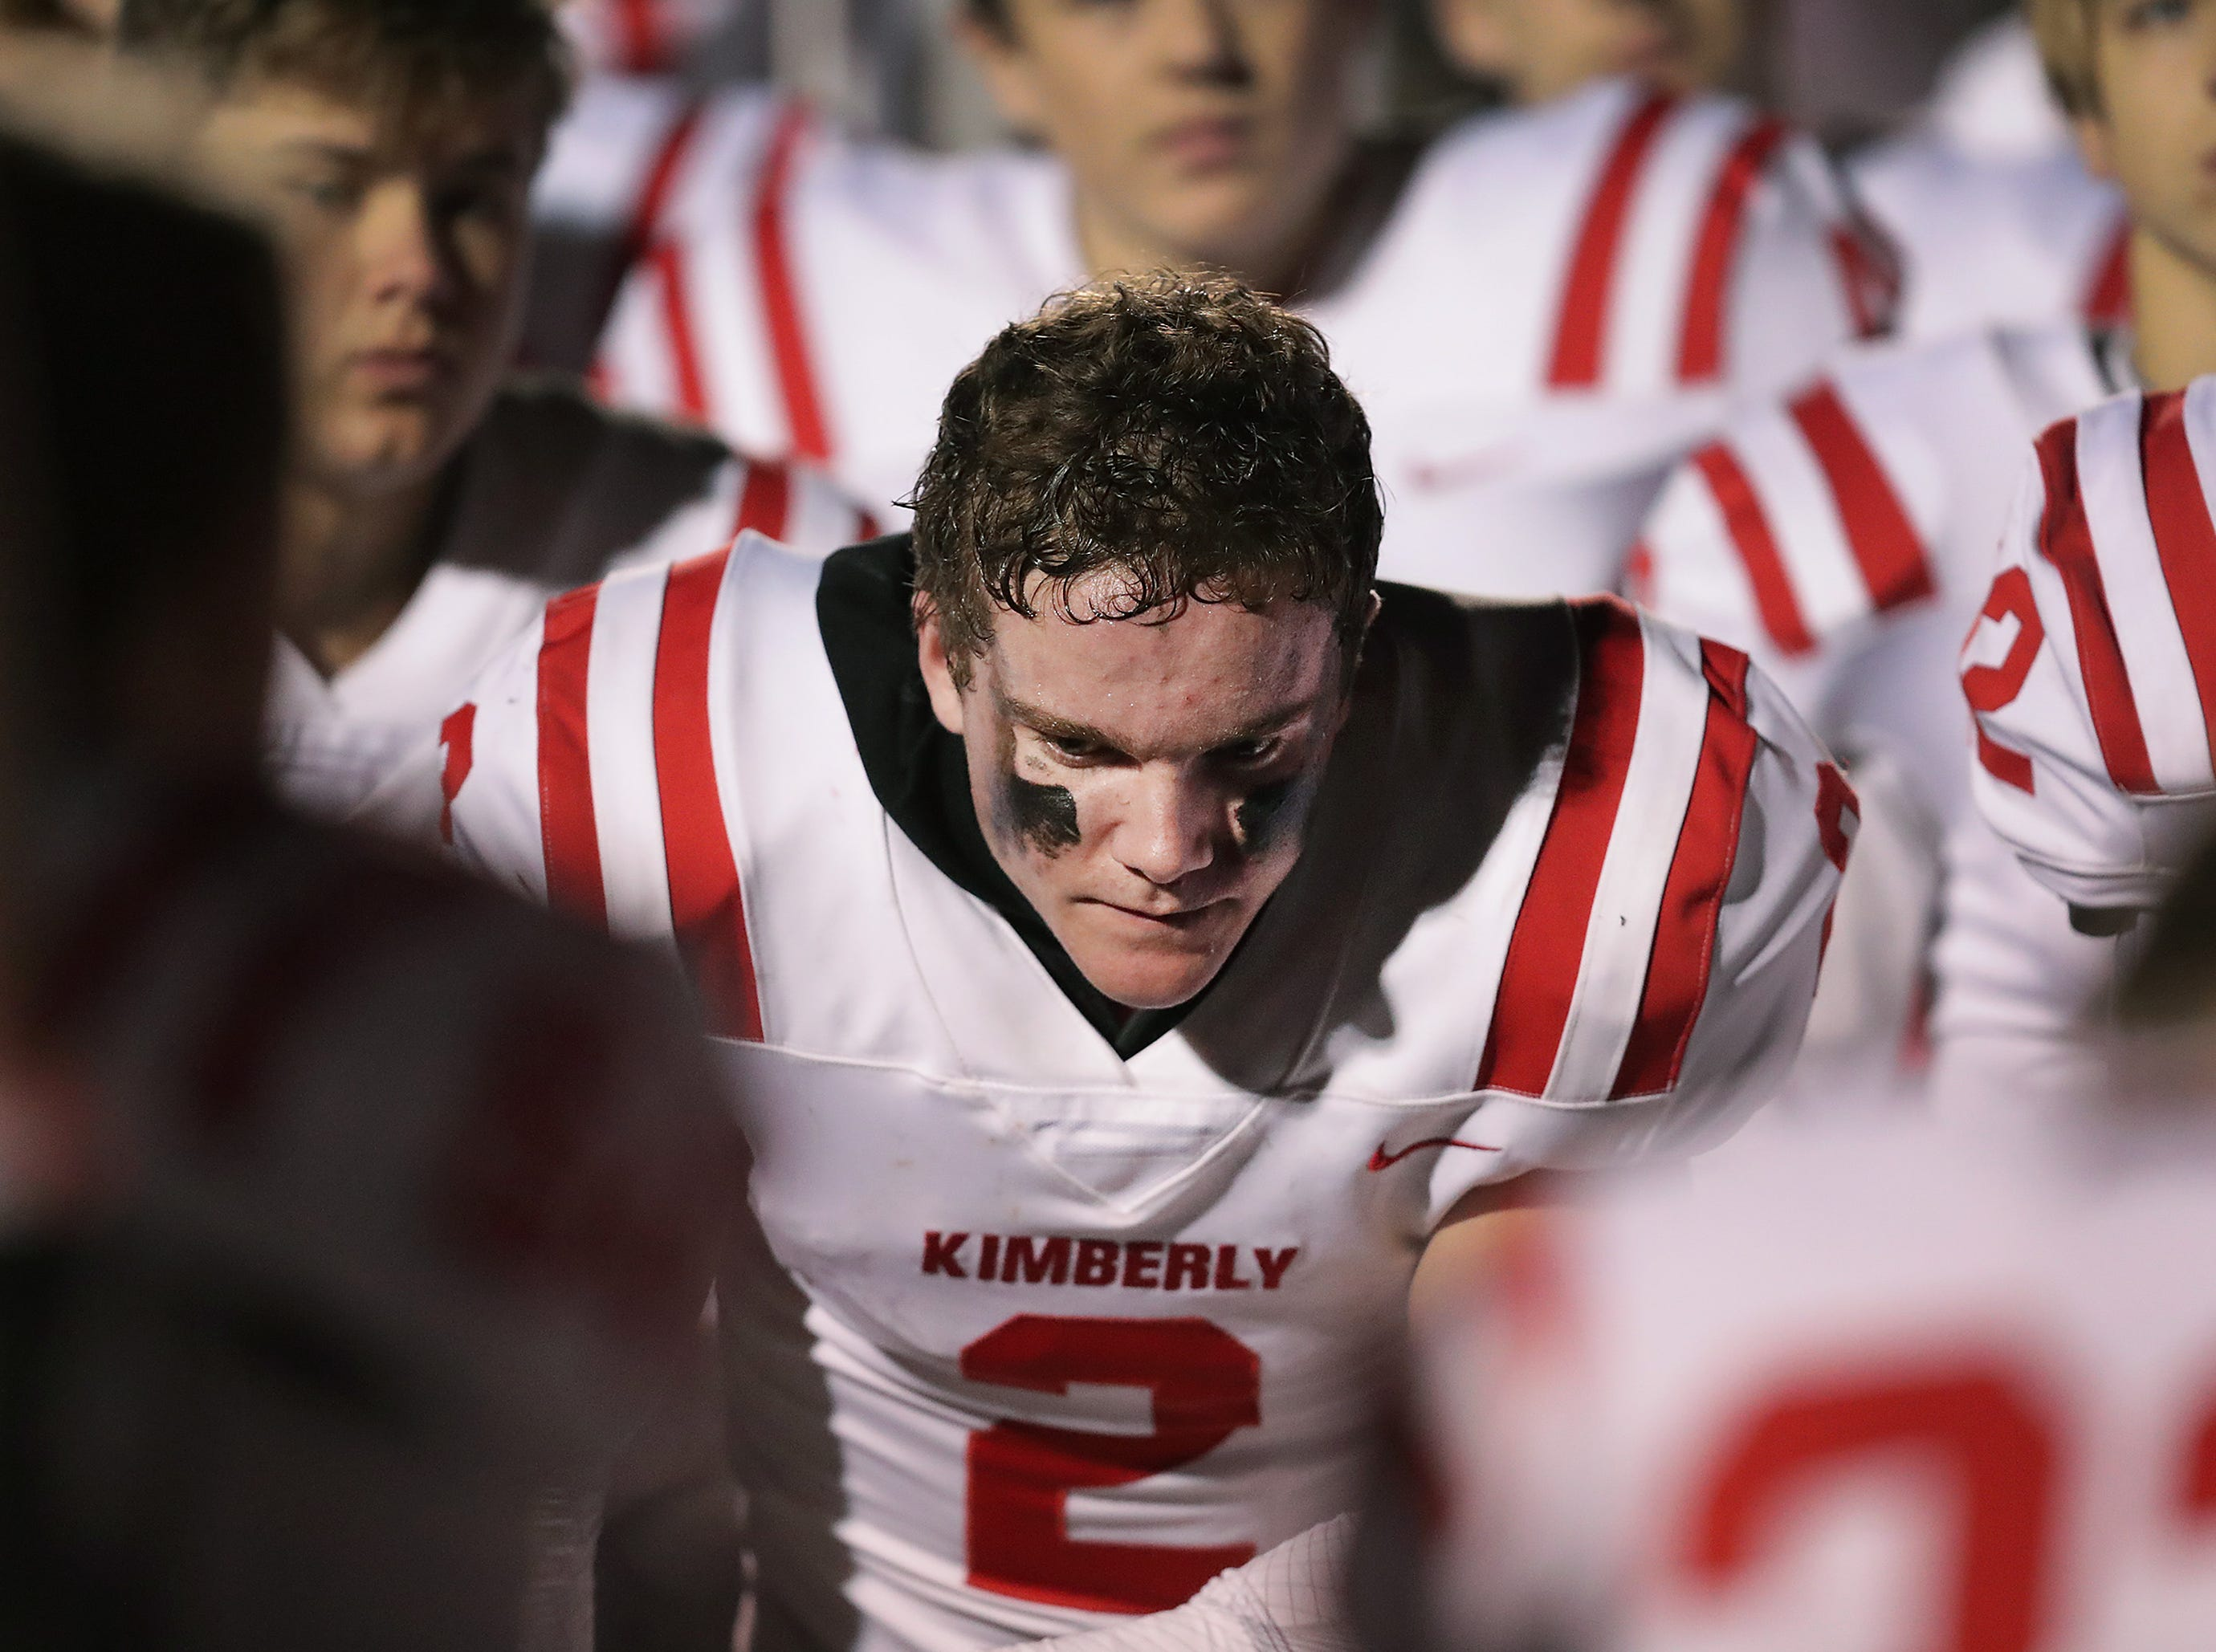 Kimberly High School's #2 Drew Lechnir against Bayport High School during their WIAA Division 1 state quarterfinal football game on Friday, November 1, 2018, in Green Bay, Wis.  Kimberly defeated Bayport 38 to 20.